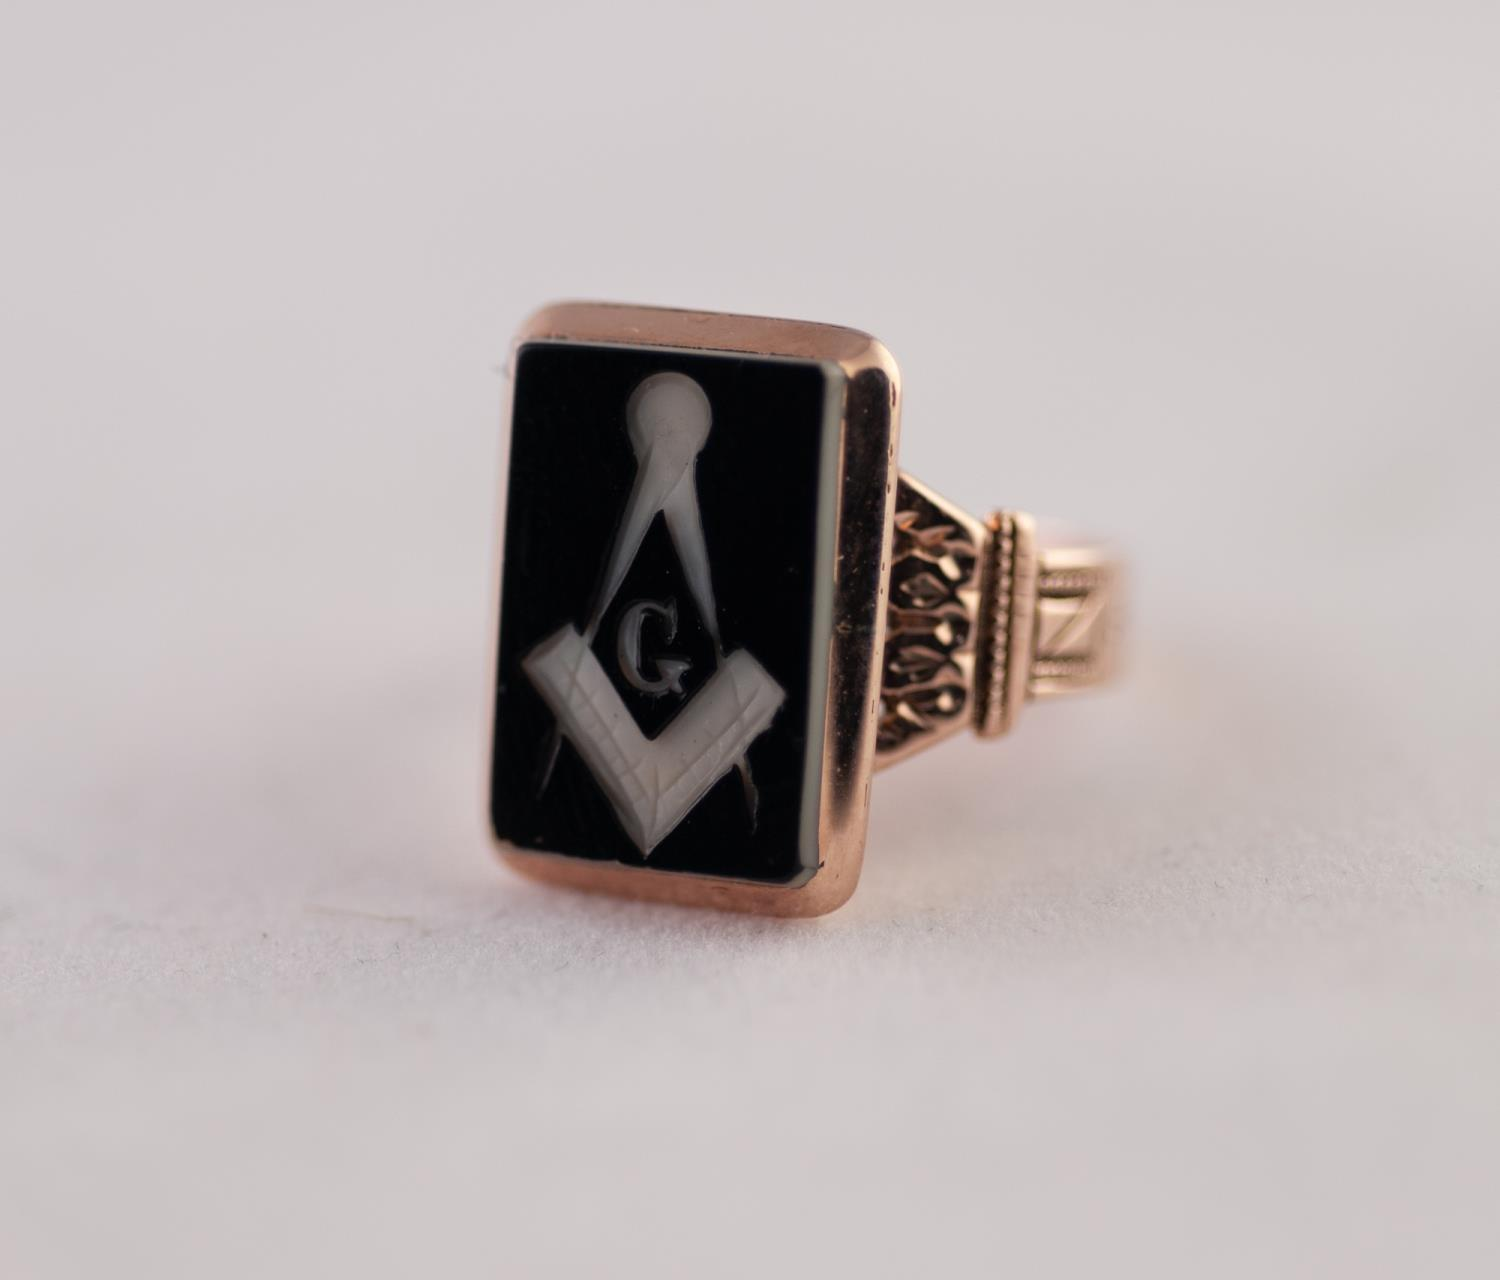 Lot 225 - A MASONIC INTALGIO SIGNET RING, a rectangular plaque with an engraved Masonic motif, to fancy